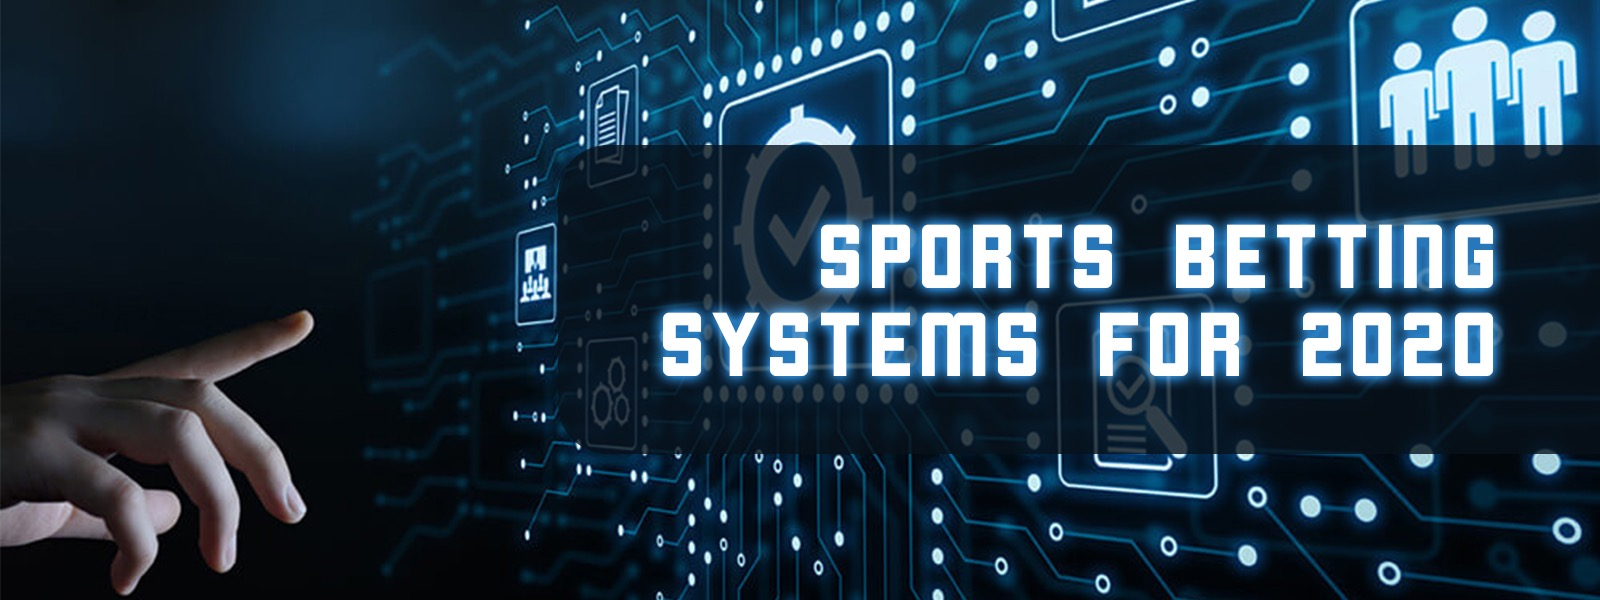 Sports Betting Systems for 2020